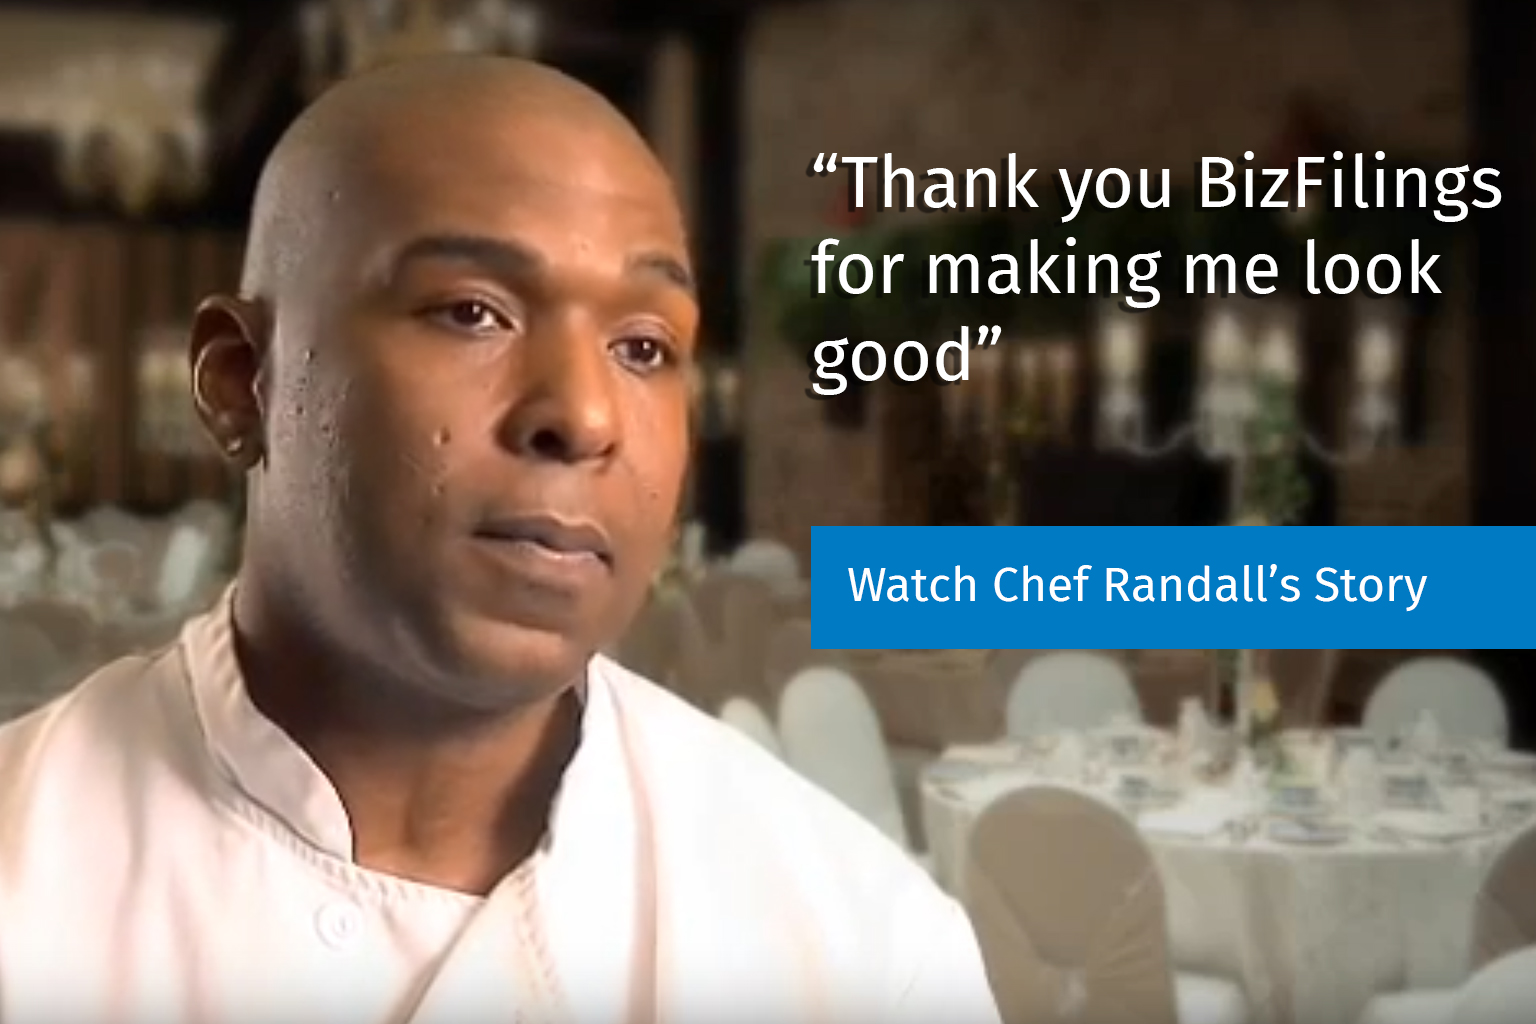 Chef Randall Story